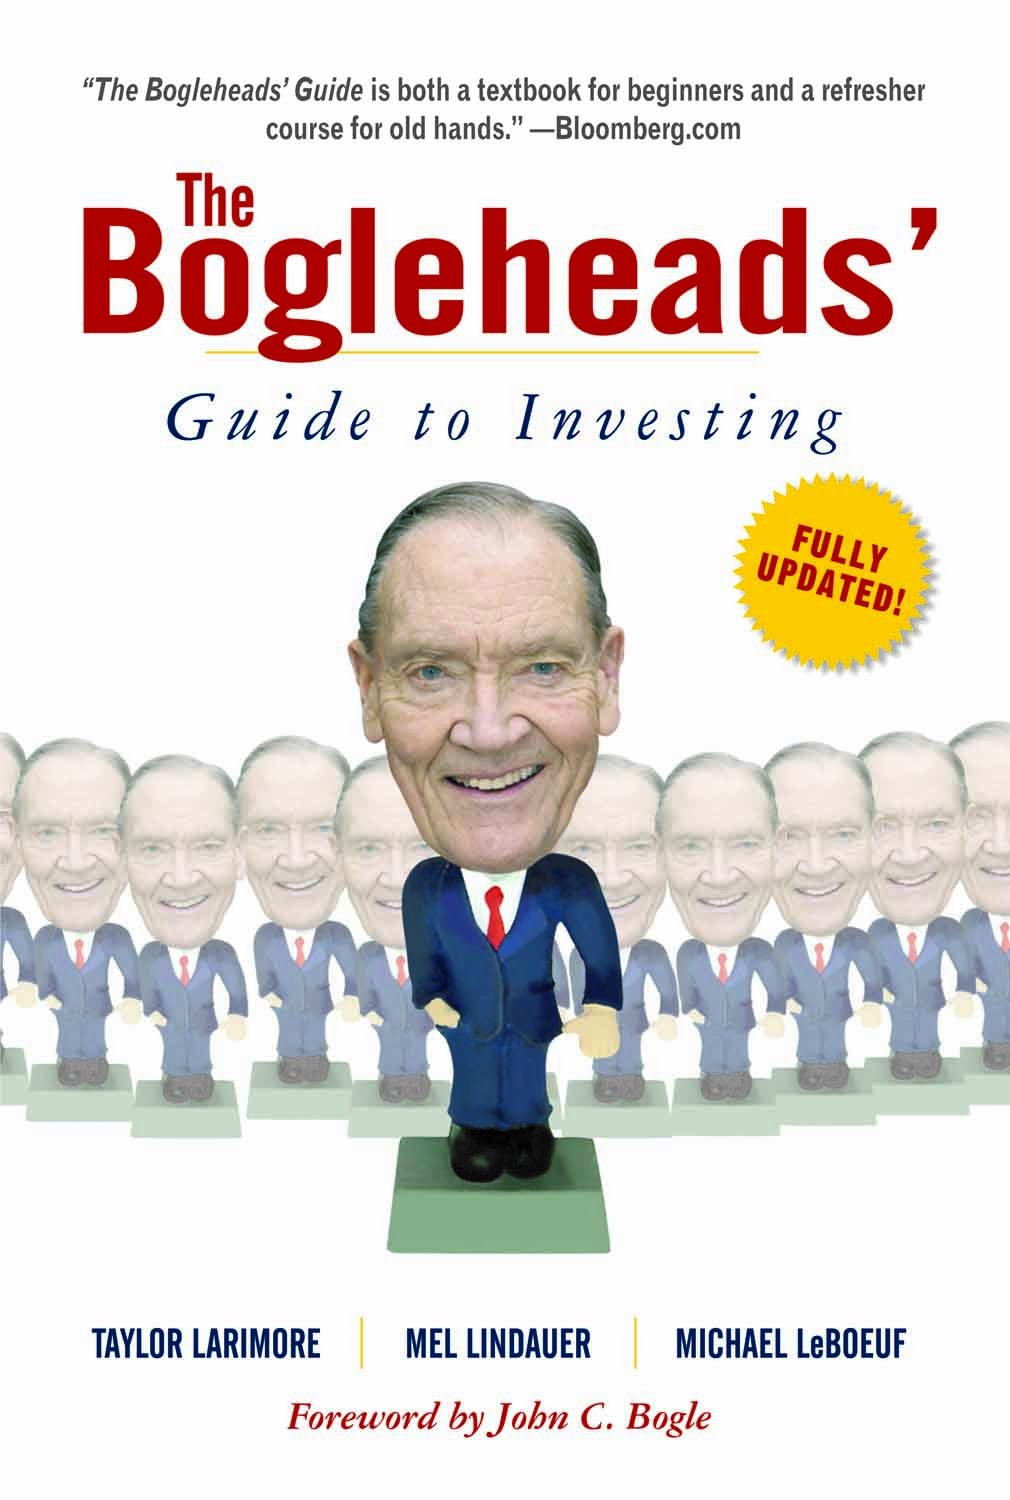 The Bogleheads' Guide To Investing: Michel Leboeuf: 9788126520459:  Amazon.com: Books